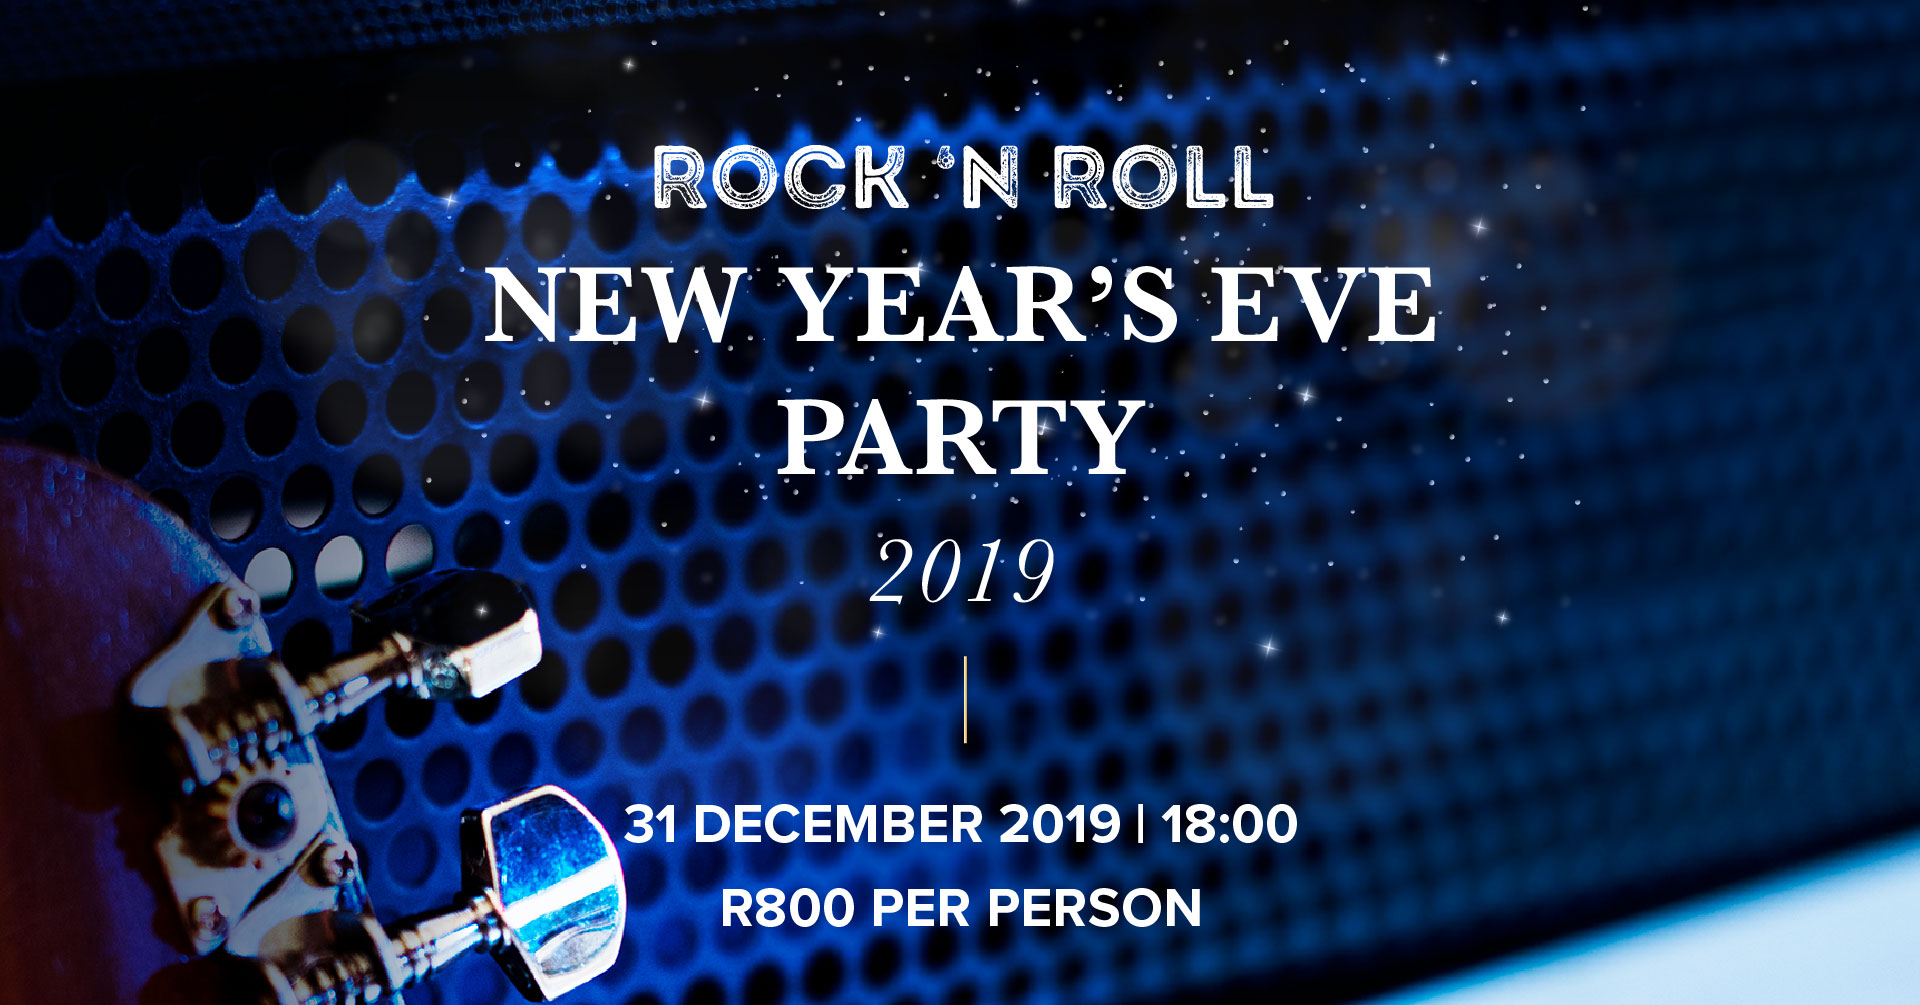 New Years Eve Party FB What is on Benguela Cove's Festive platter?